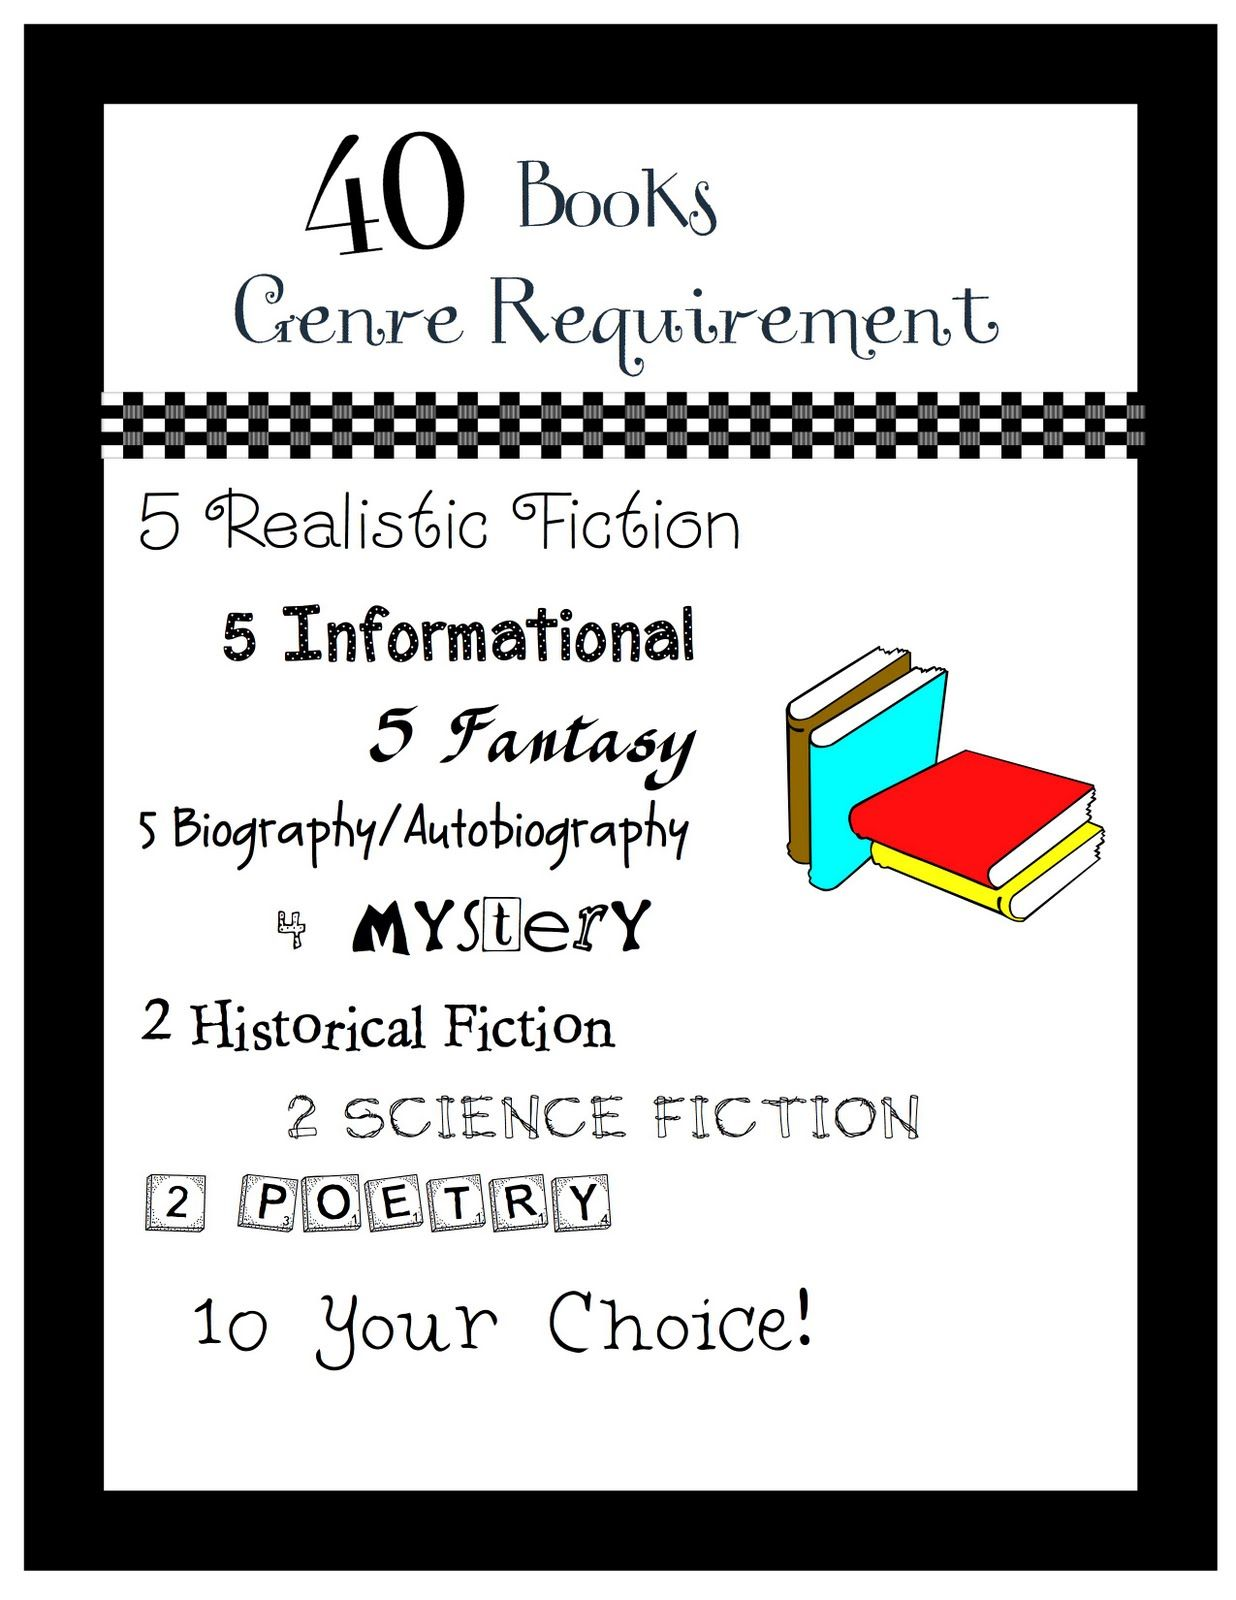 40 Books Genre Requirement